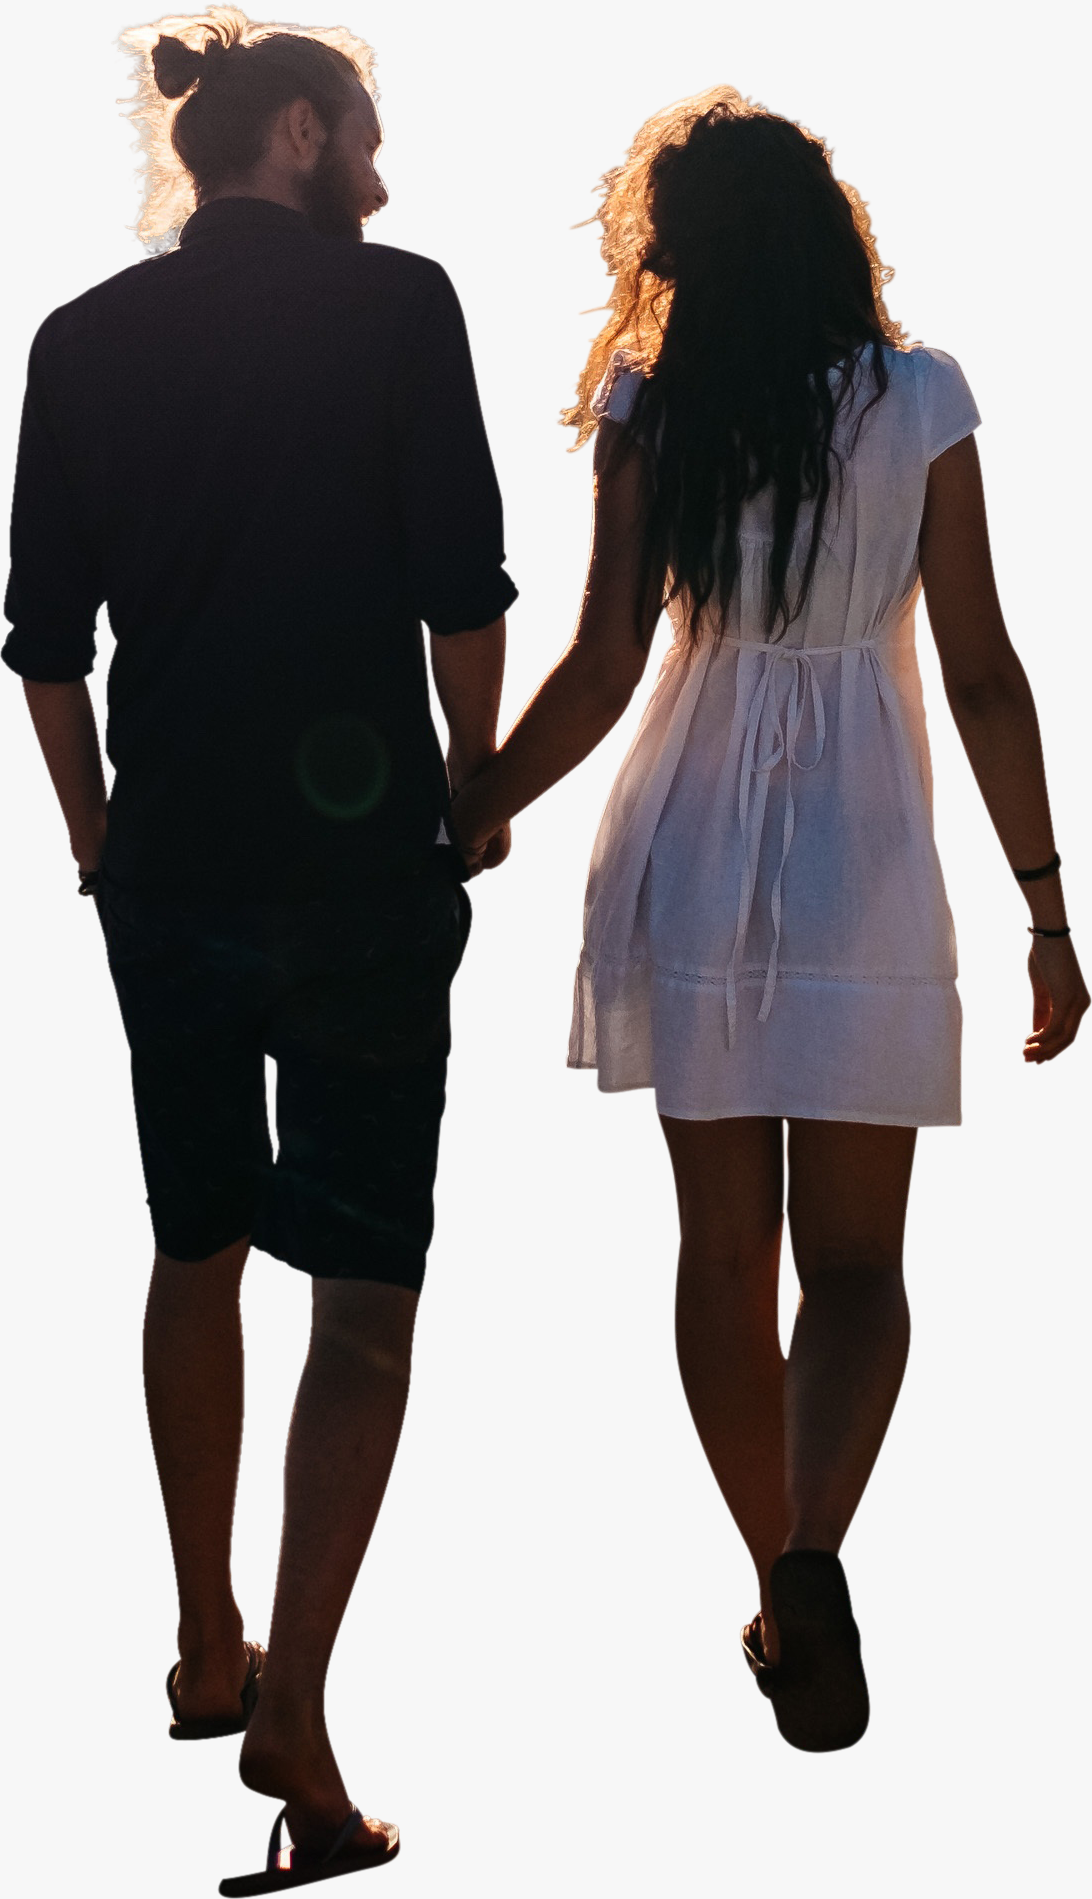 Couple Walking Png Poses Casual